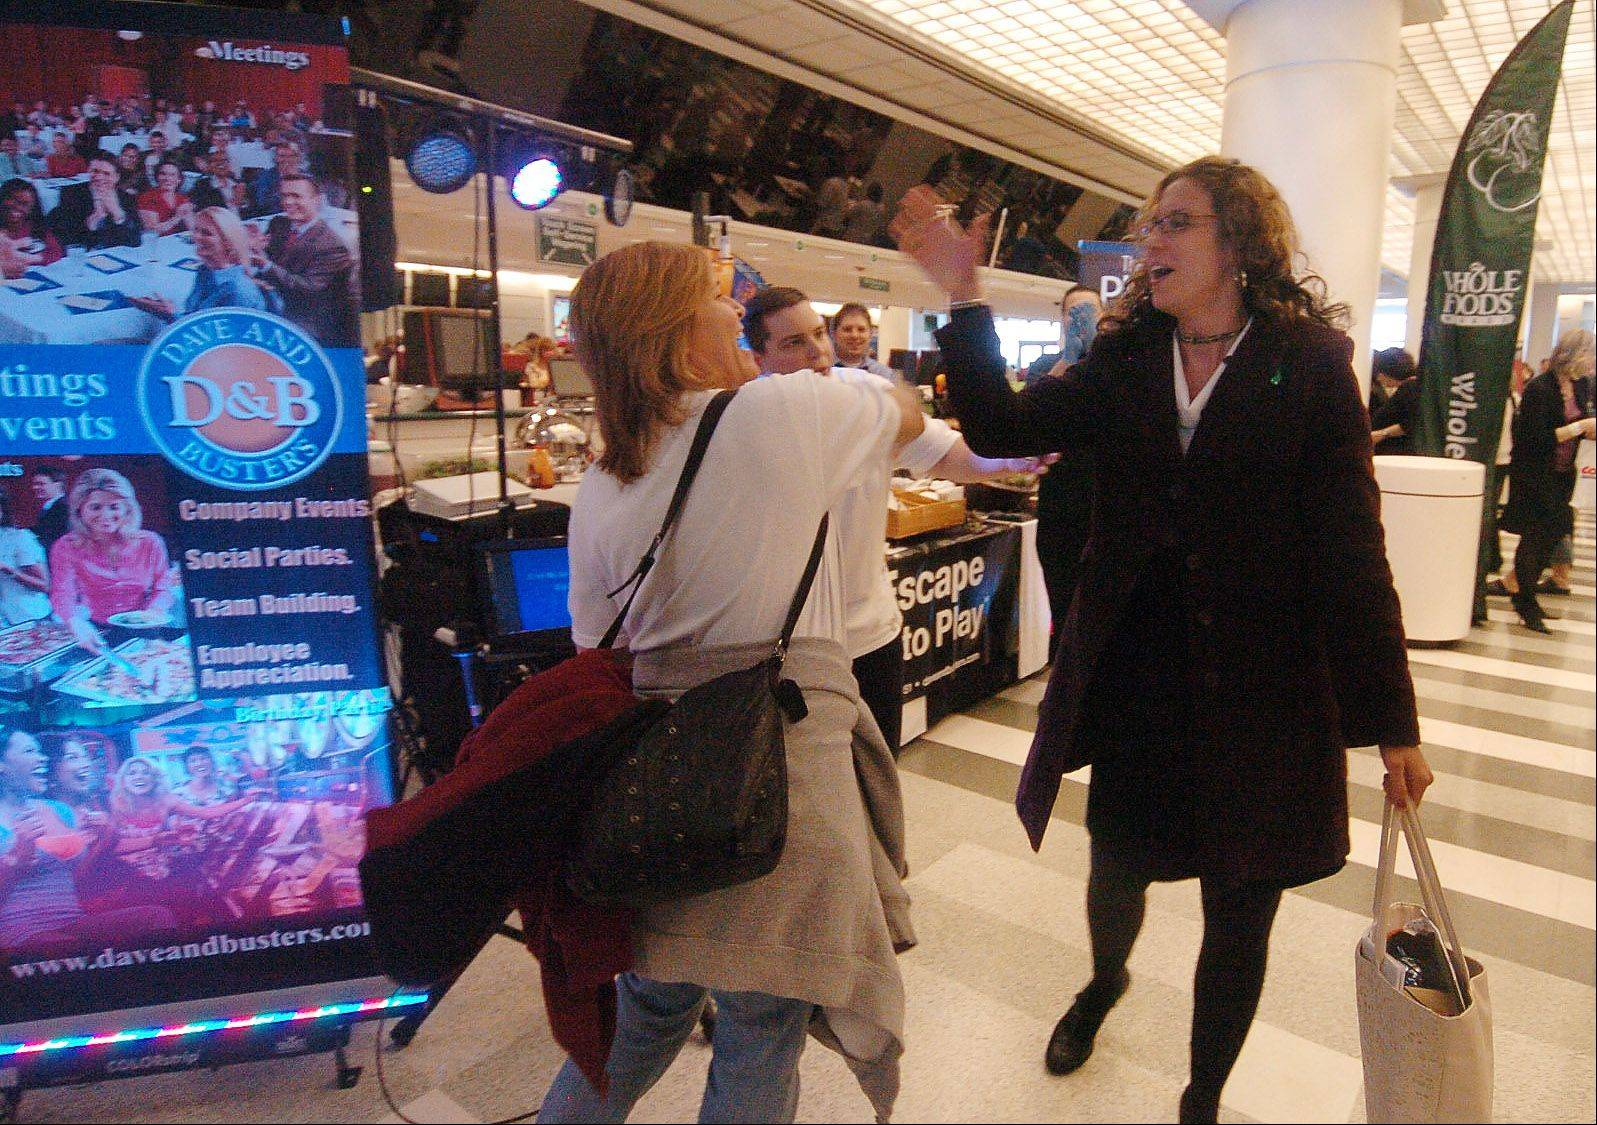 Lisa Siejko of Hoffman Estates, left, and Jenny Randag of Darien high-five each other after singing karaoke Wednesday at the Dave and Buster's booth at Chefs' Fest at Arlington Park.